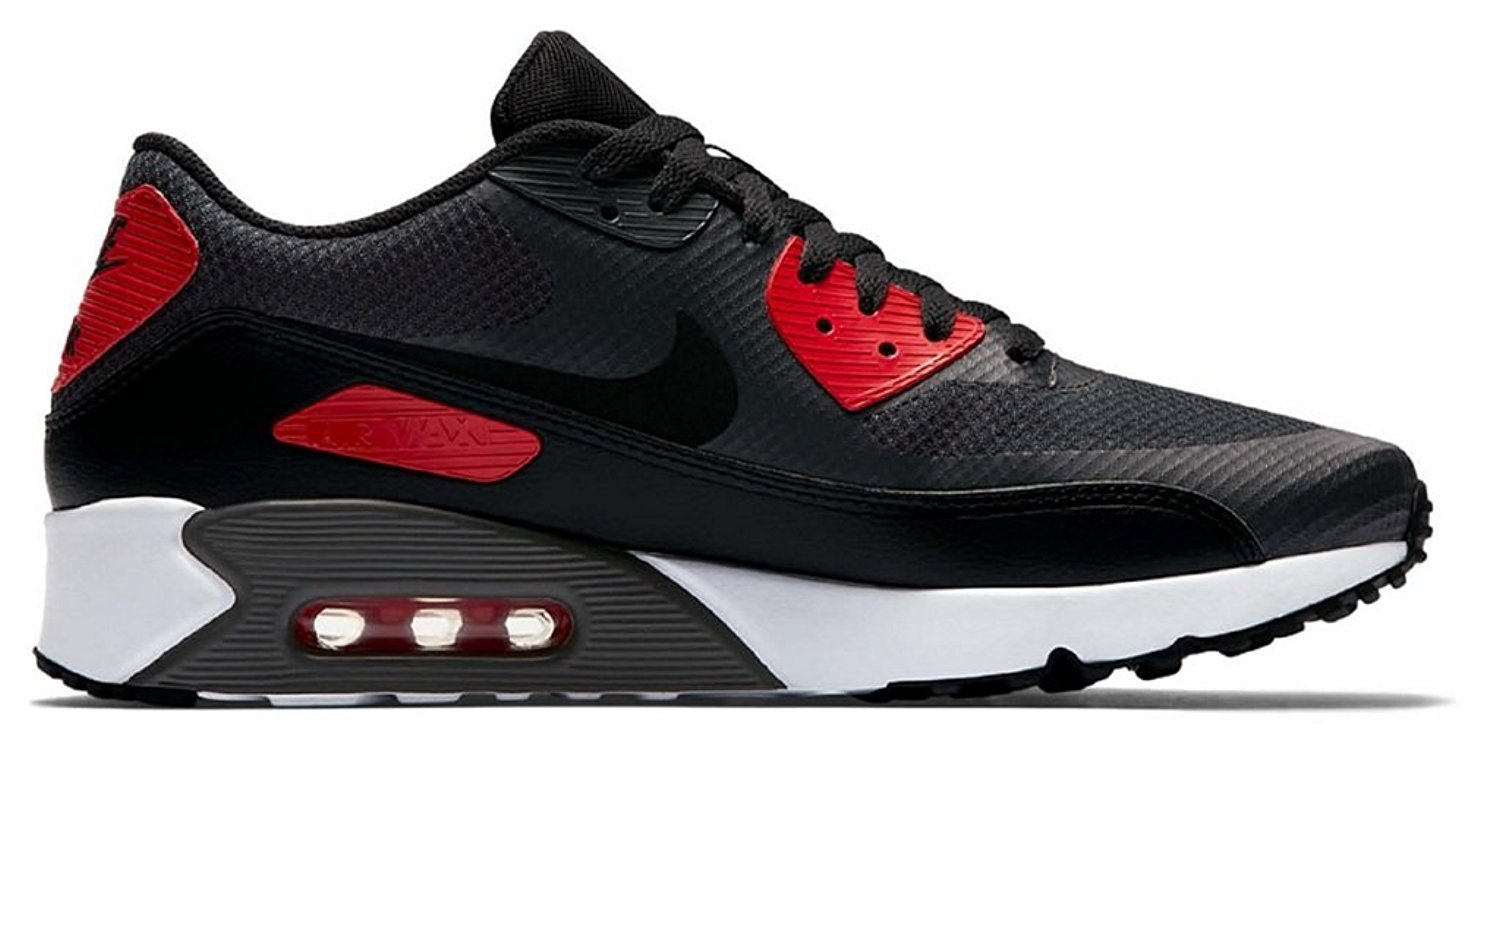 Nike Sportswear Sko Air Max 90 Ultra 2.0 Essential Black